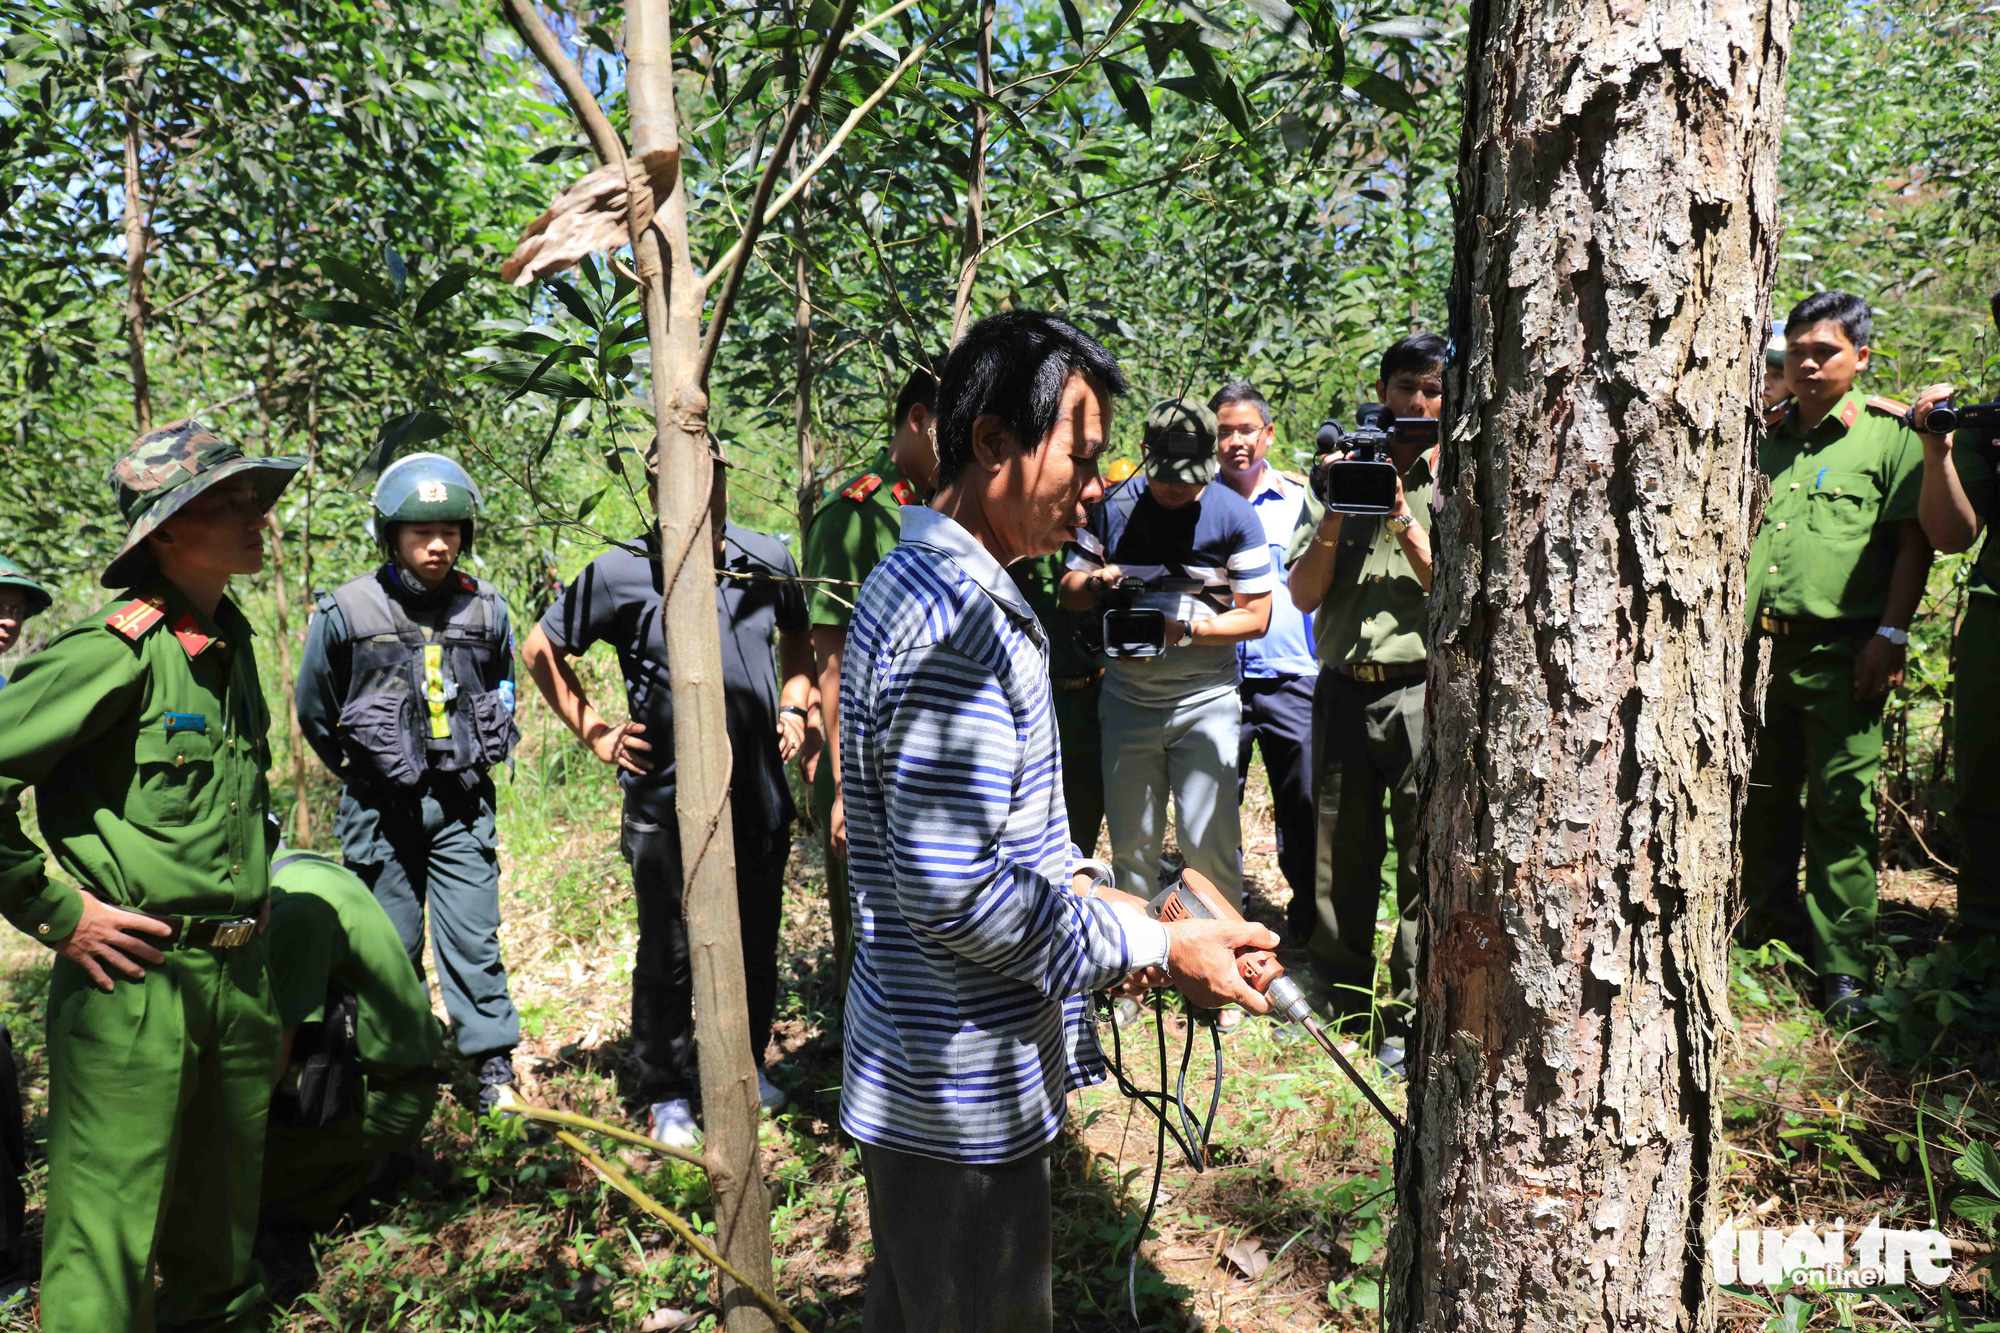 Duong Van Hong shows police officers how he had poisoned the pine trees in Lam Dong Province, Vietnam. Photo: M.V. / Tuoi Tre